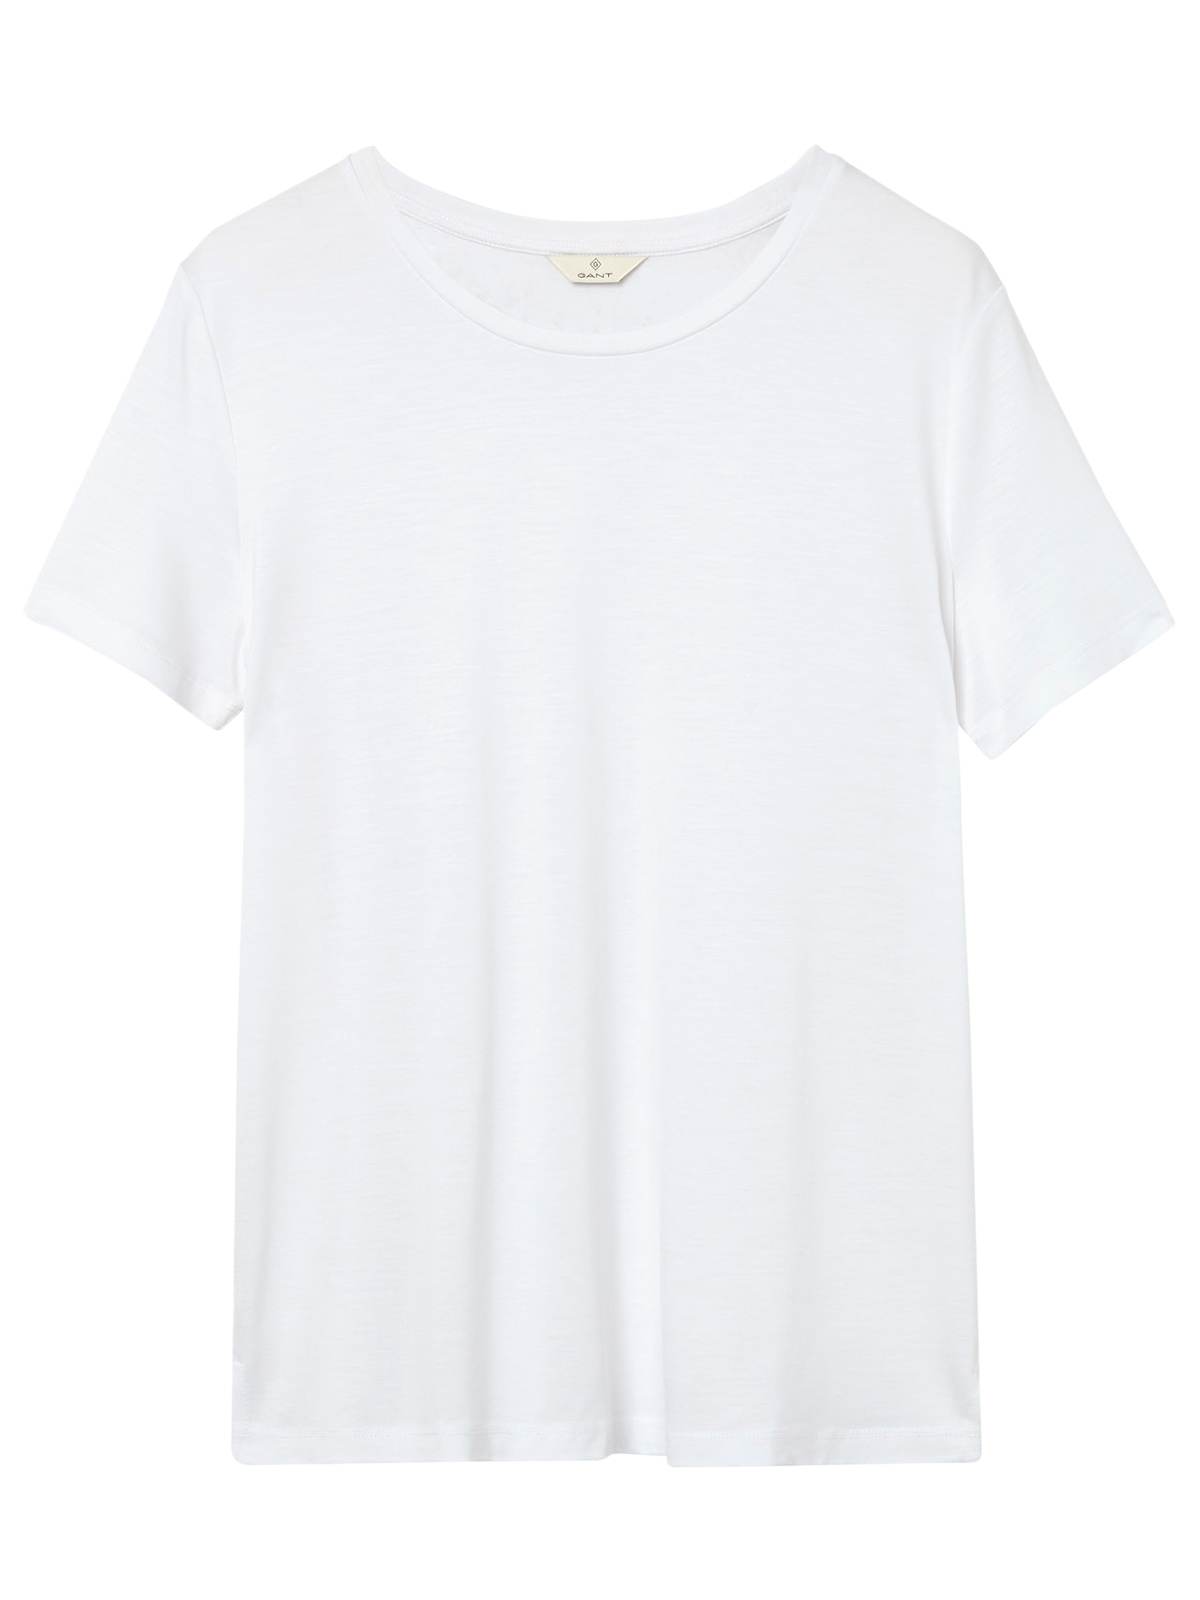 Immagine di GANT | T-SHIRT D1. LIGHT WEIGHT SS T-SHIRT